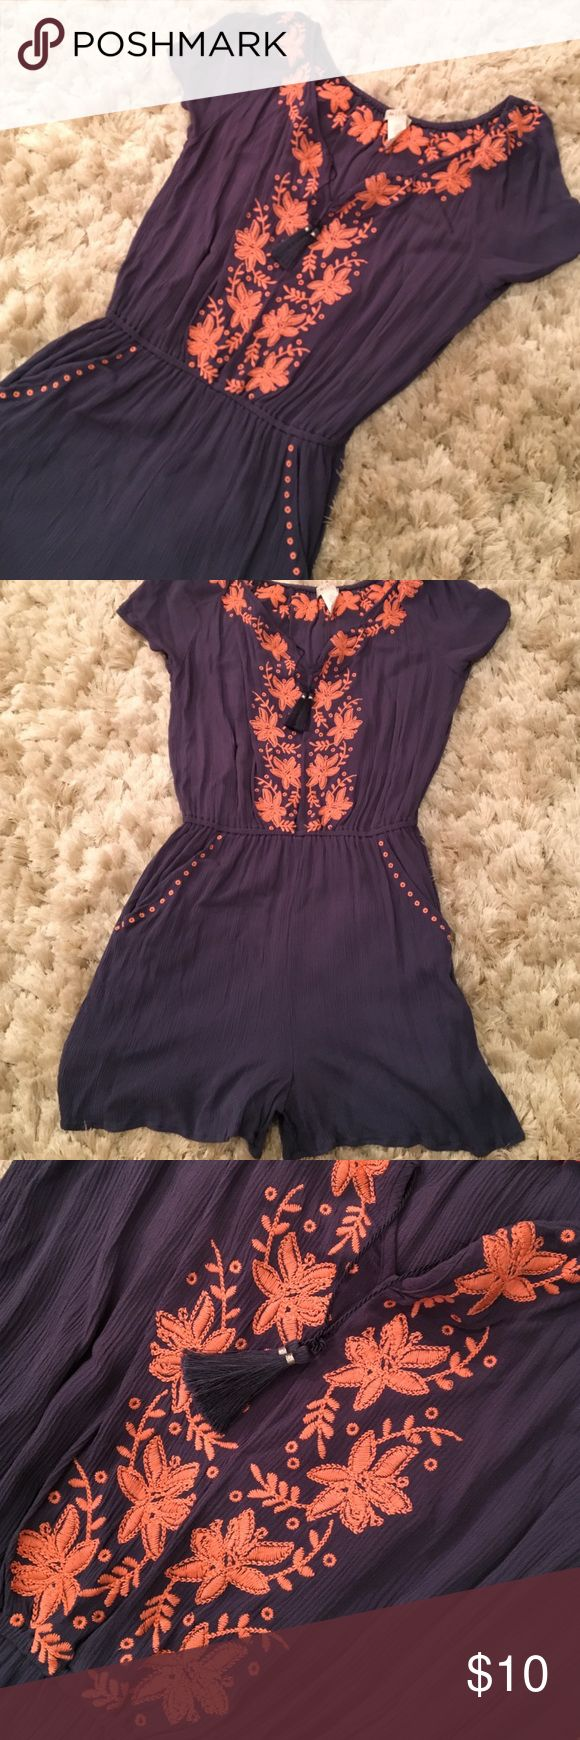 Navy Romper This super cute navy romper is perfect for those lazy summer days.  It has two pockets and some tassel ties.  The peach detail adds some cute flair.  No damage, except materials tag was cut off for comfort.  Neck, sleeves, and waist have elastic to stretch and fit perfectly.  Very comfortable. love, Fire Other